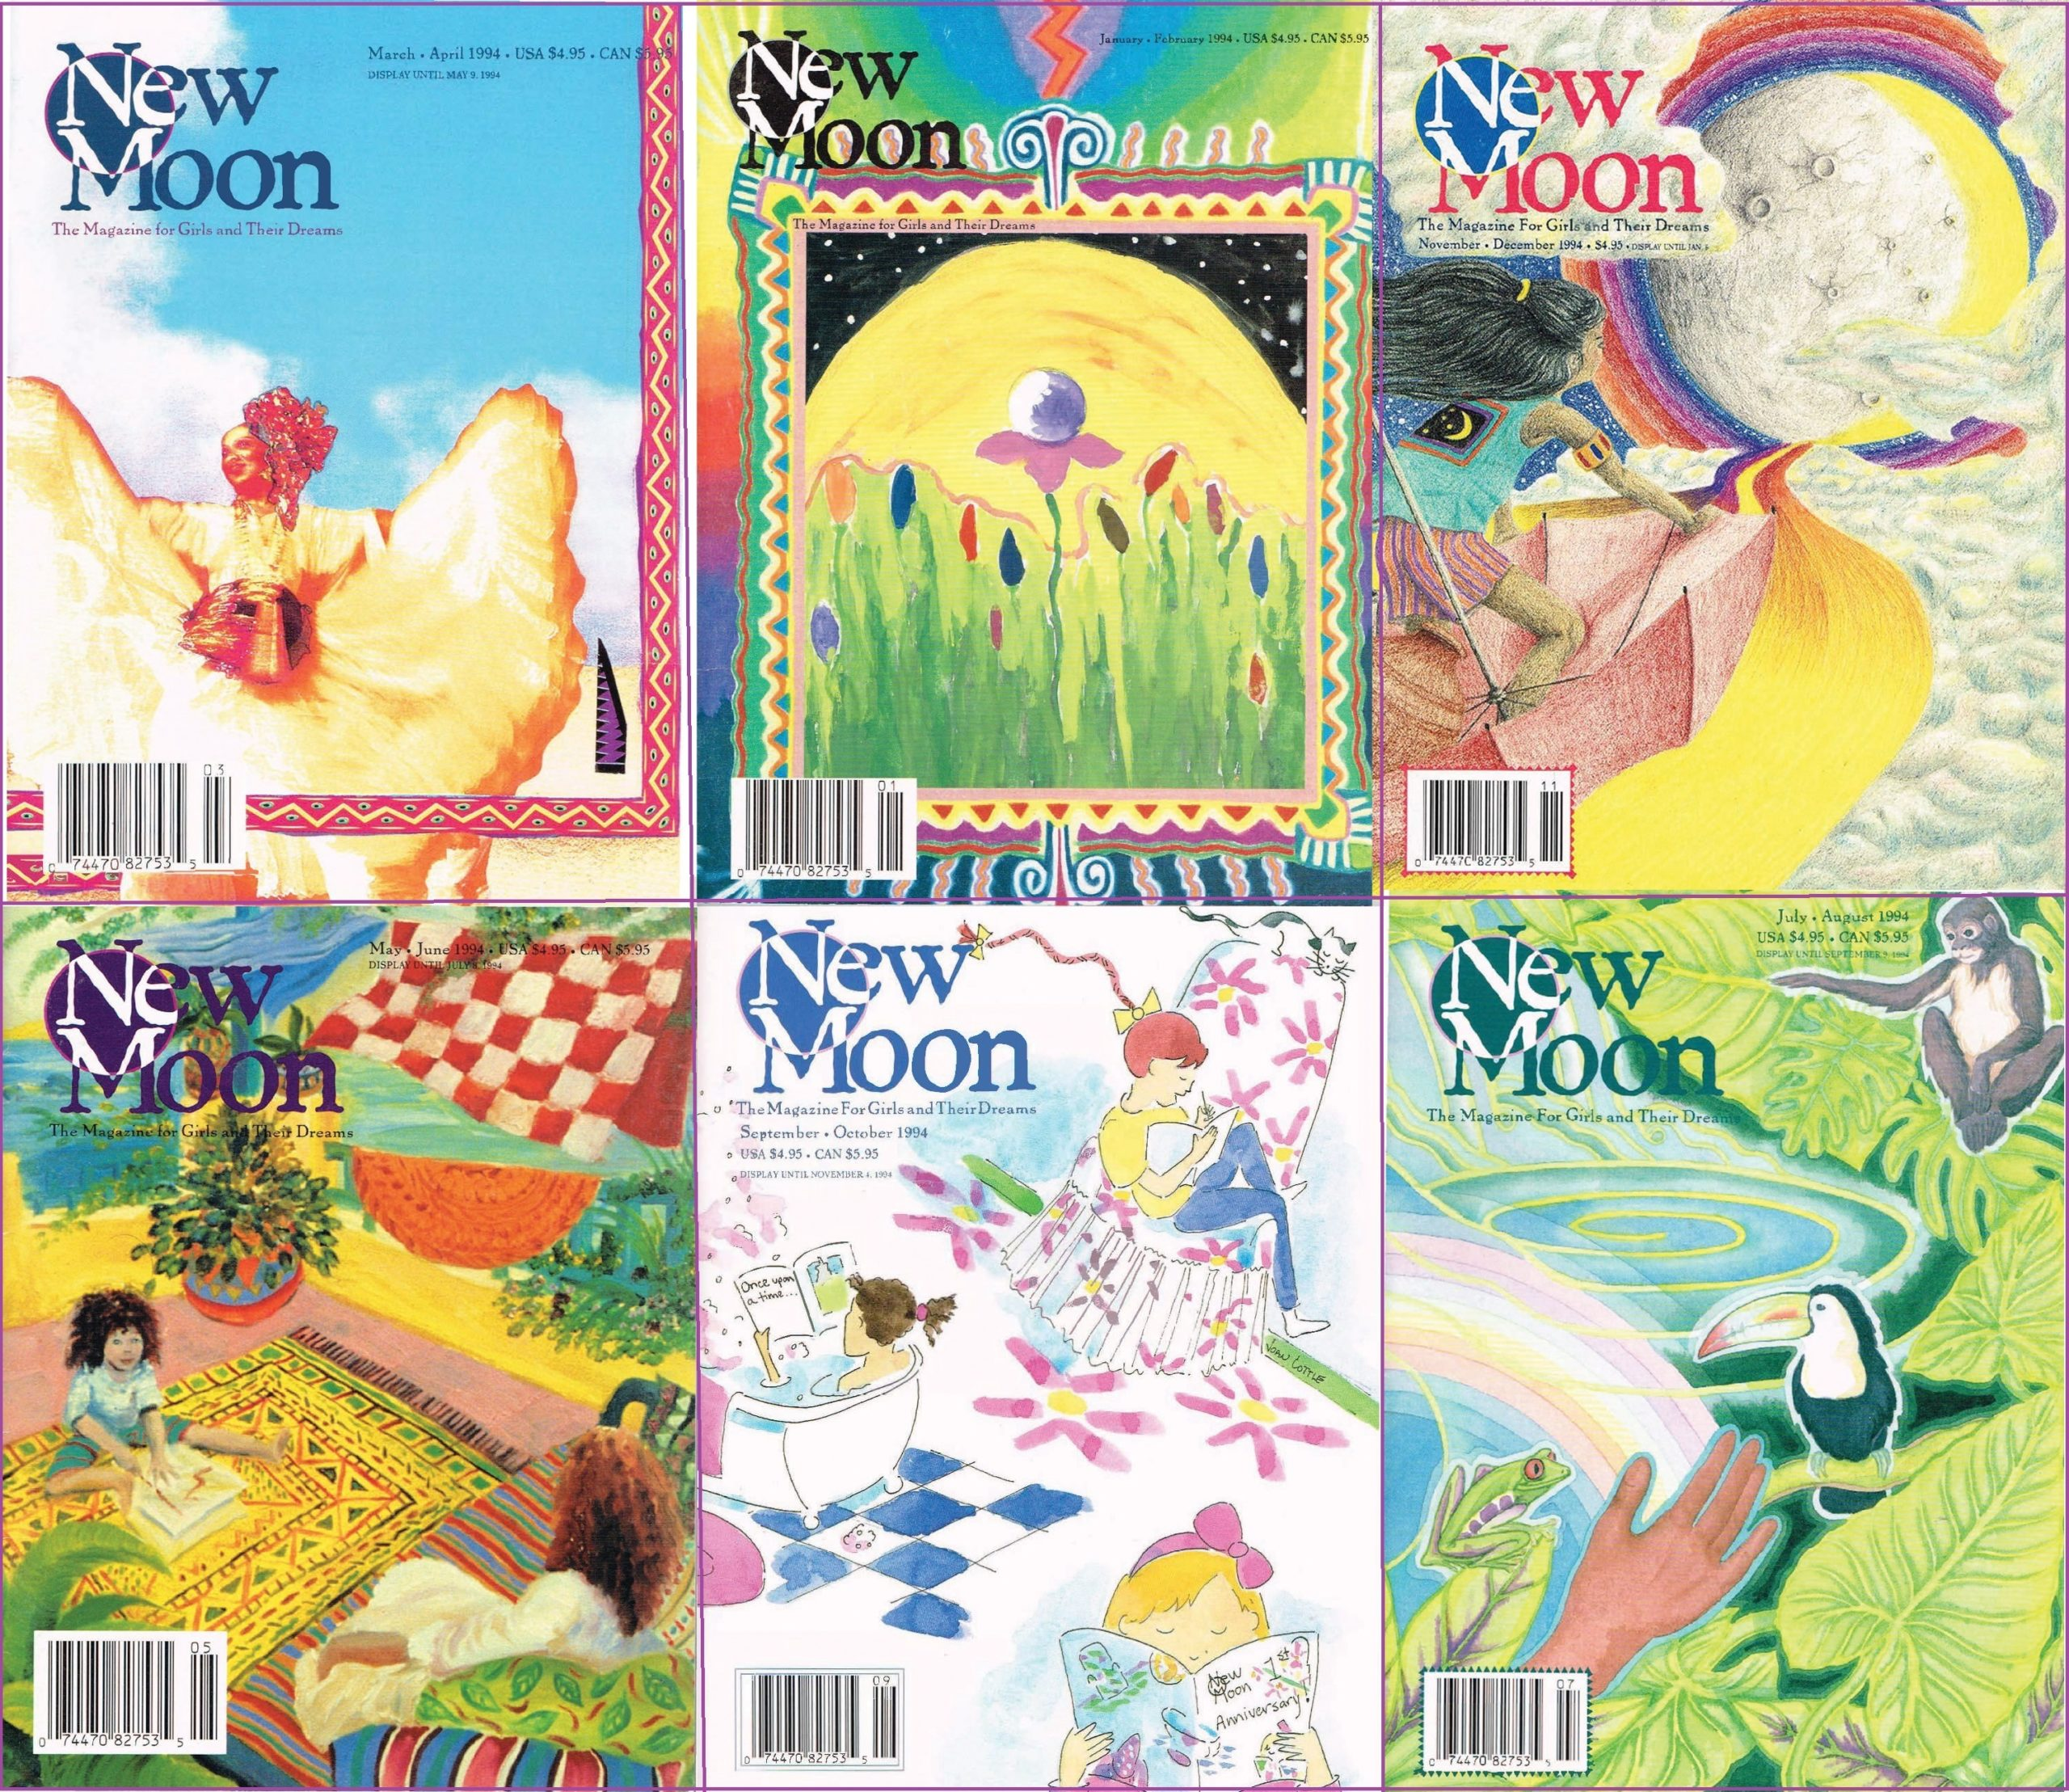 emotional and social connection through classic New Moon Girls magazines